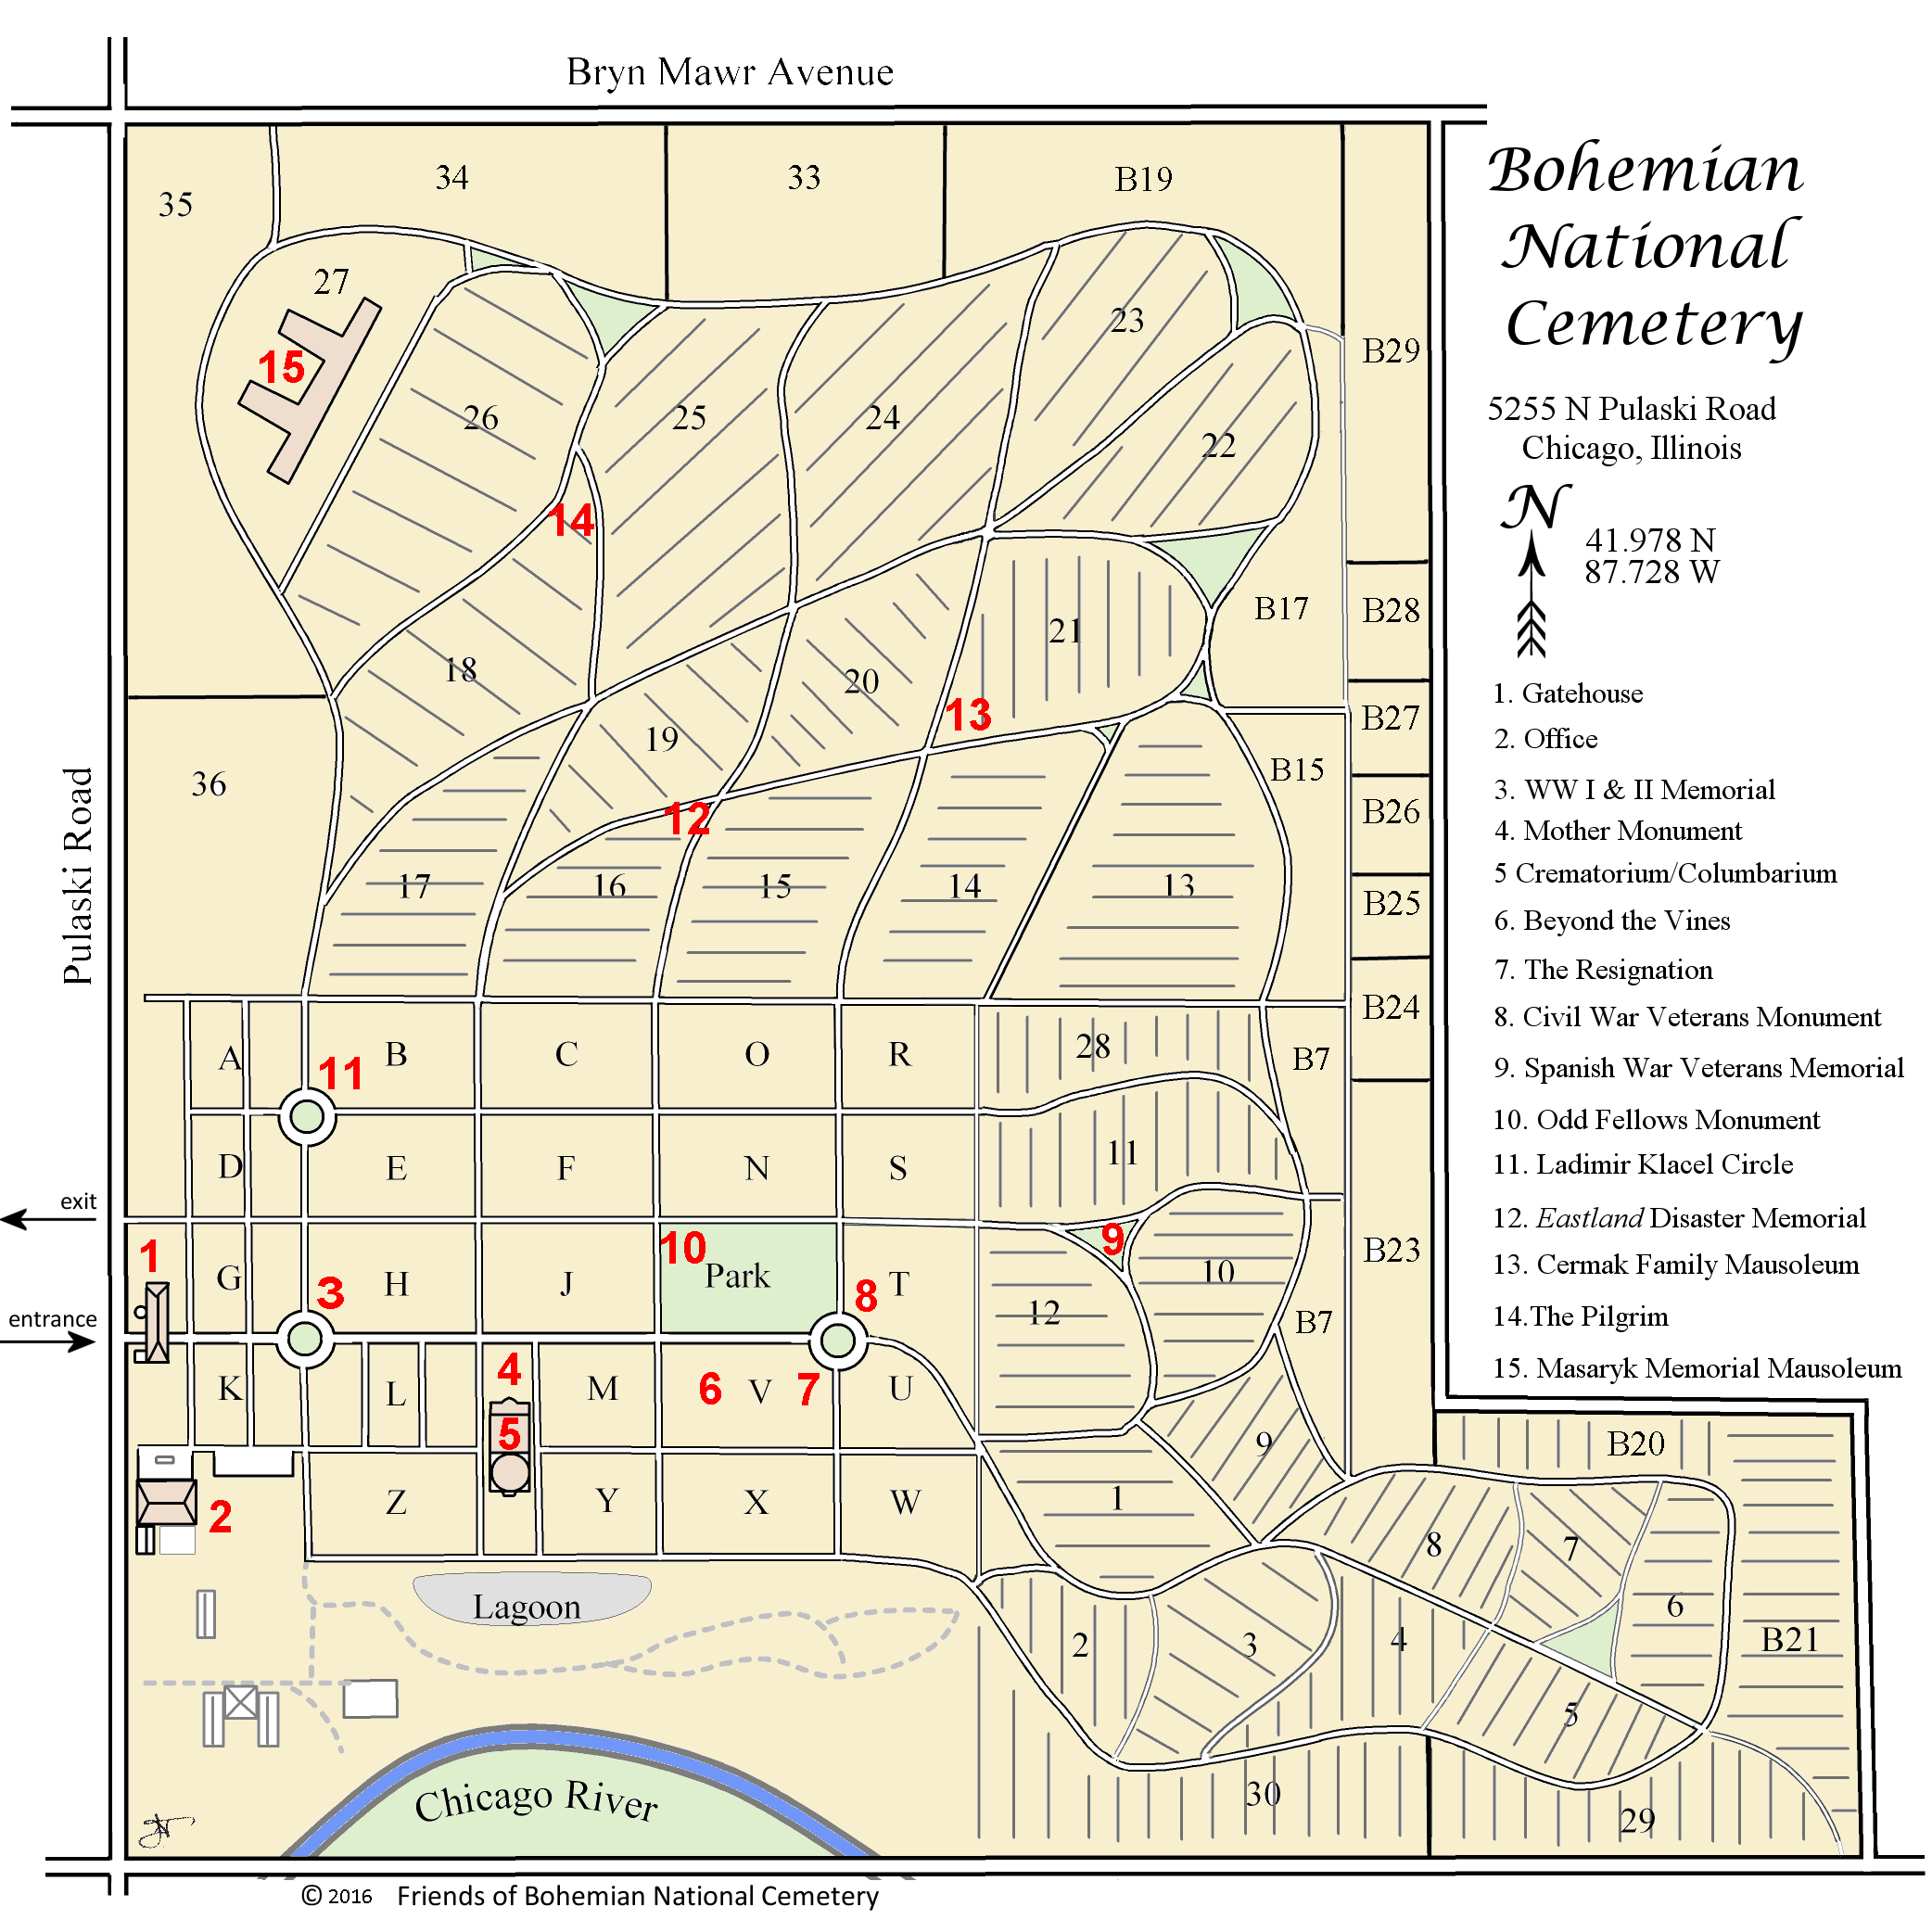 map of Bohemian Natonal Cemetery